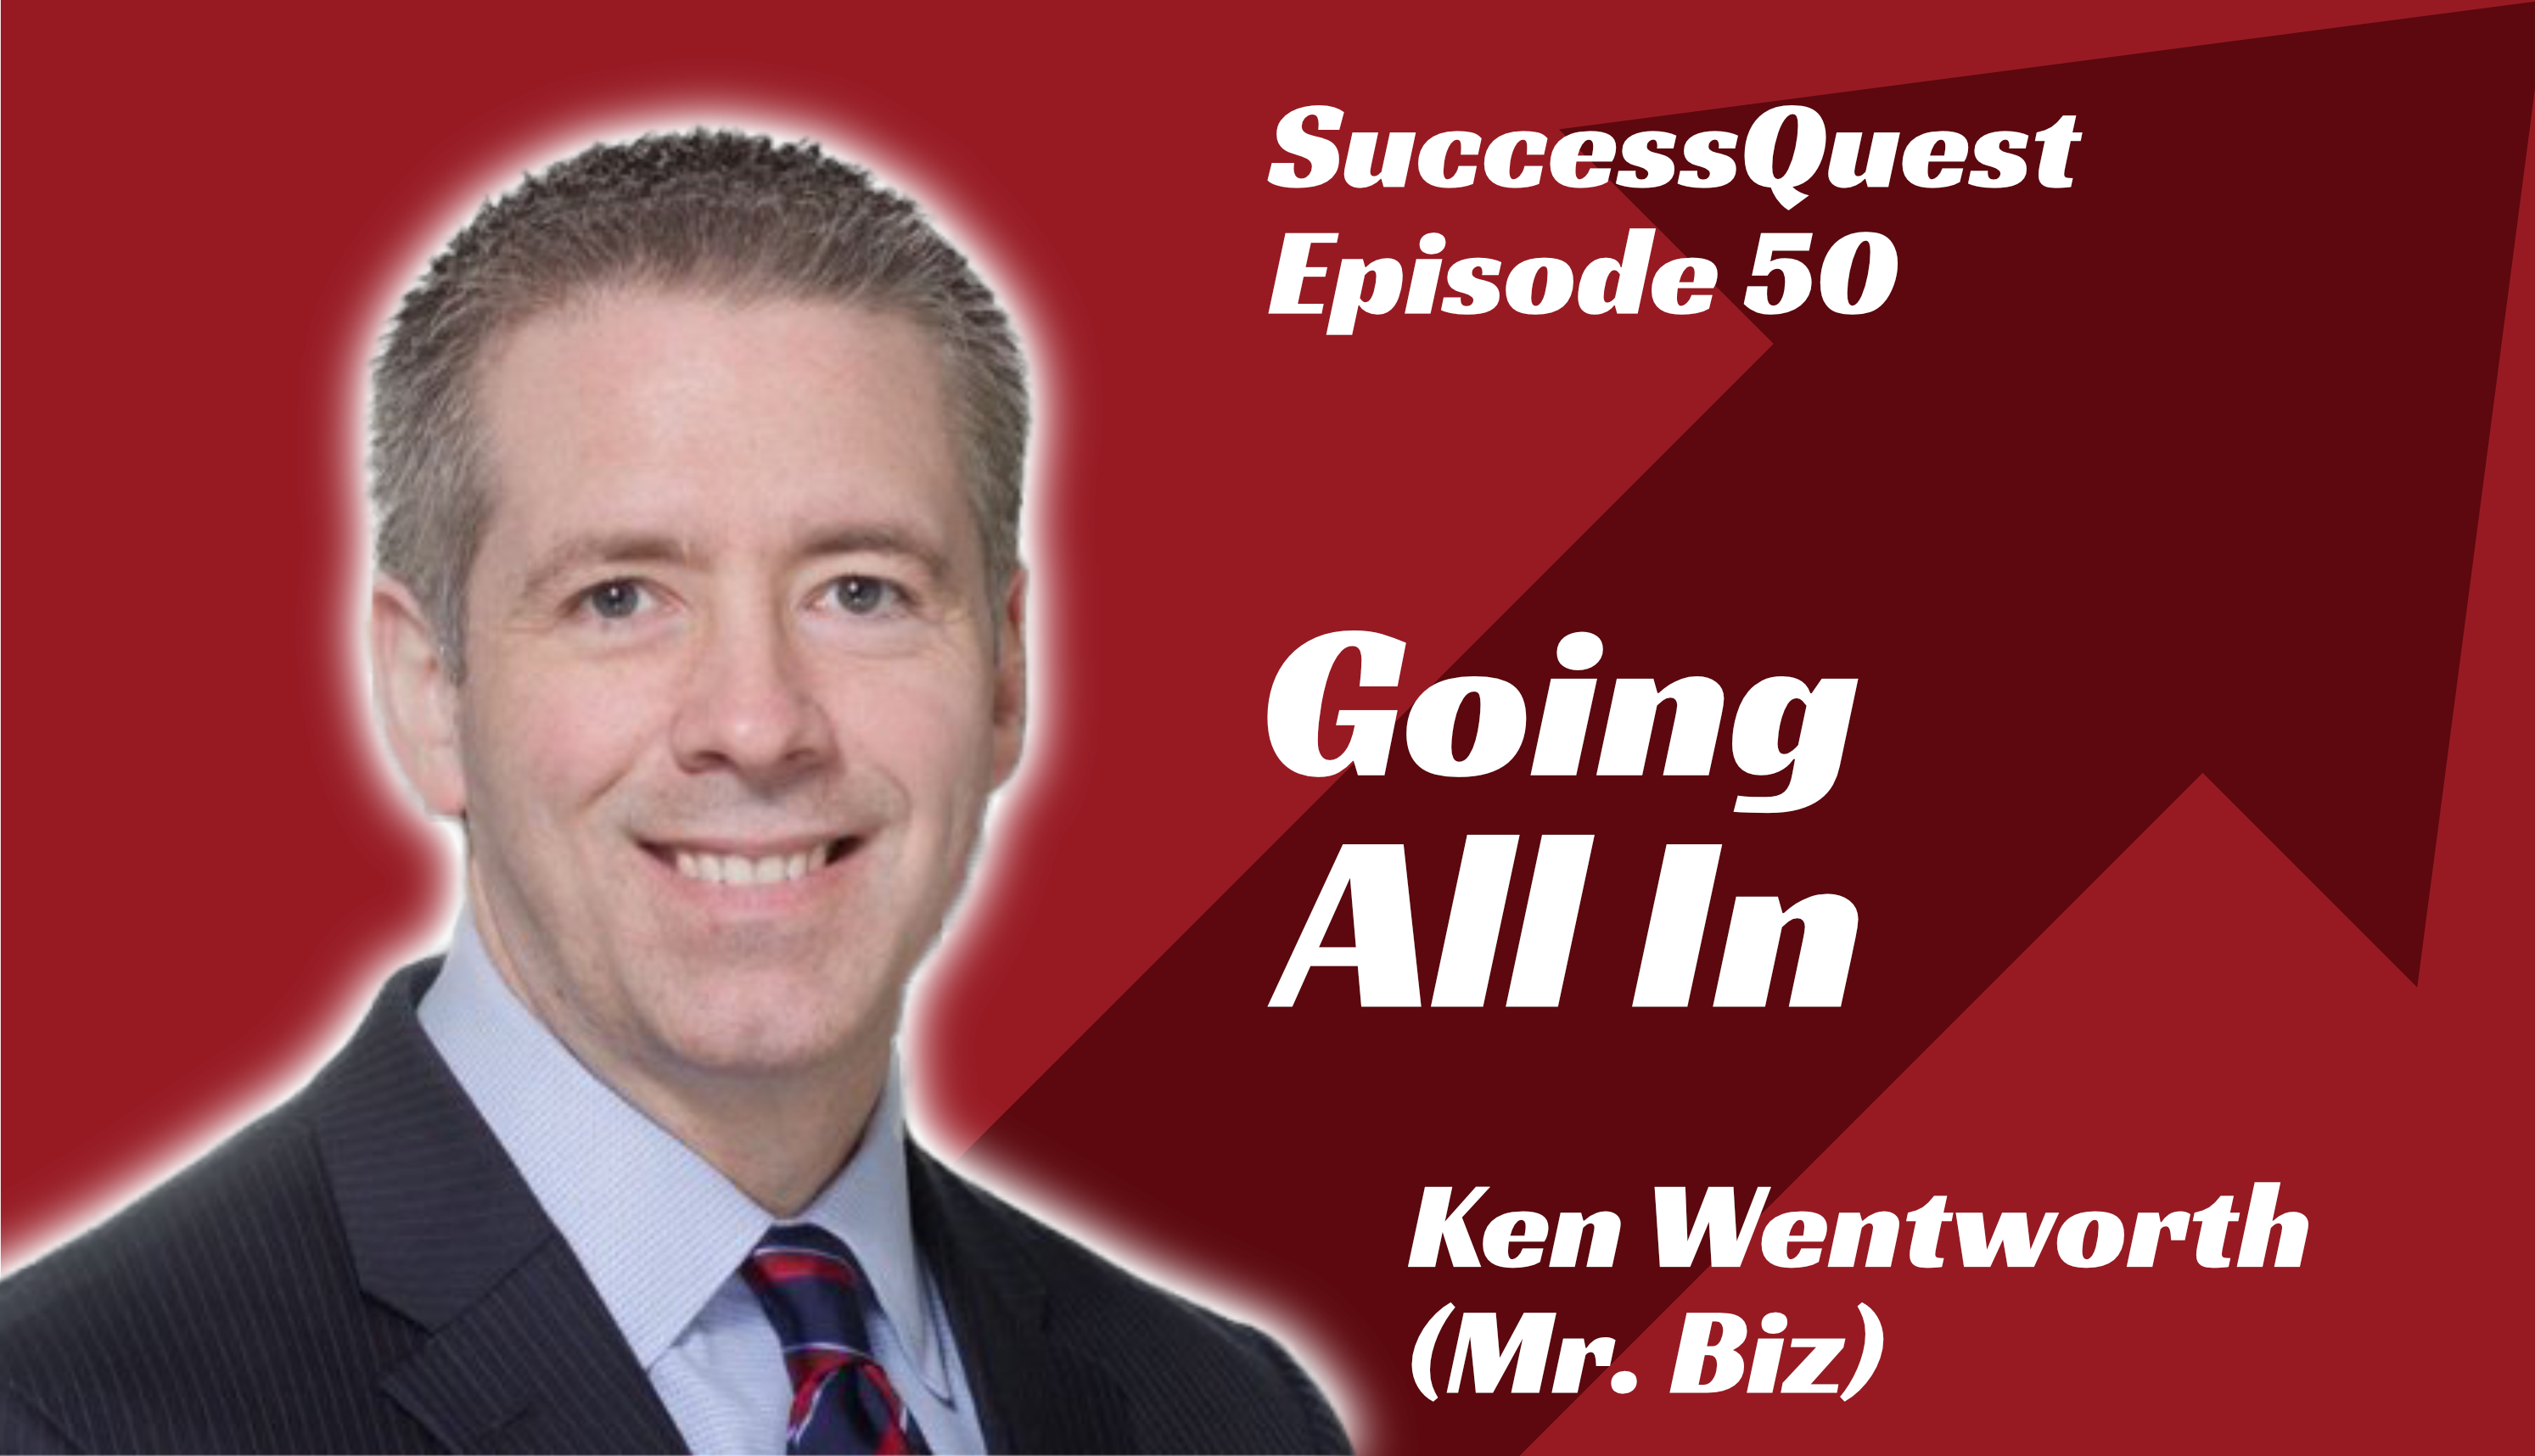 Going all in Ken Wentworth Mr. Biz SuccessQuest